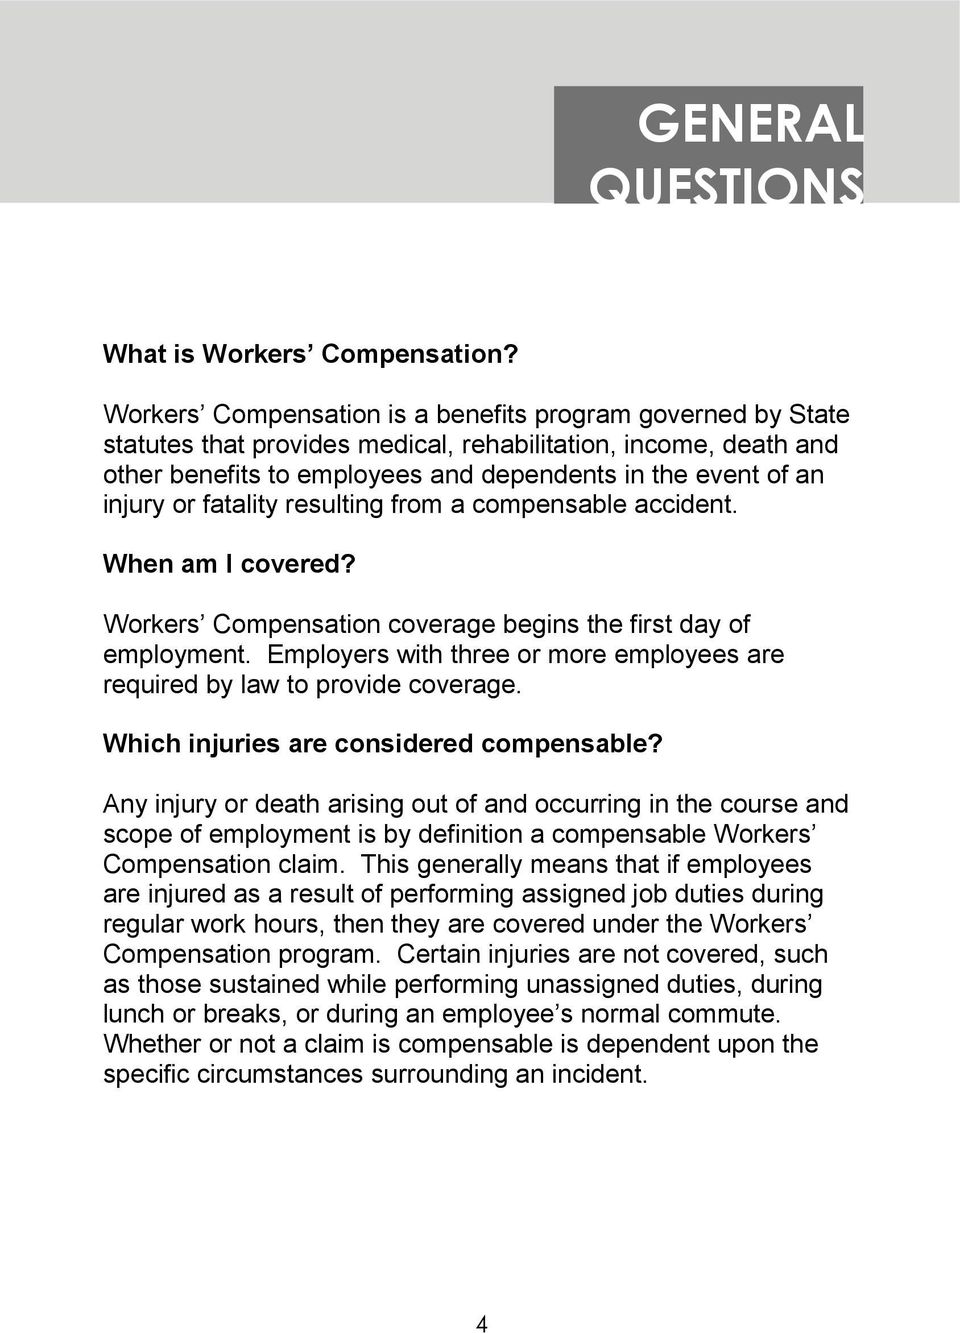 fatality resulting from a compensable accident. When am I covered? Workers Compensation coverage begins the first day of employment.